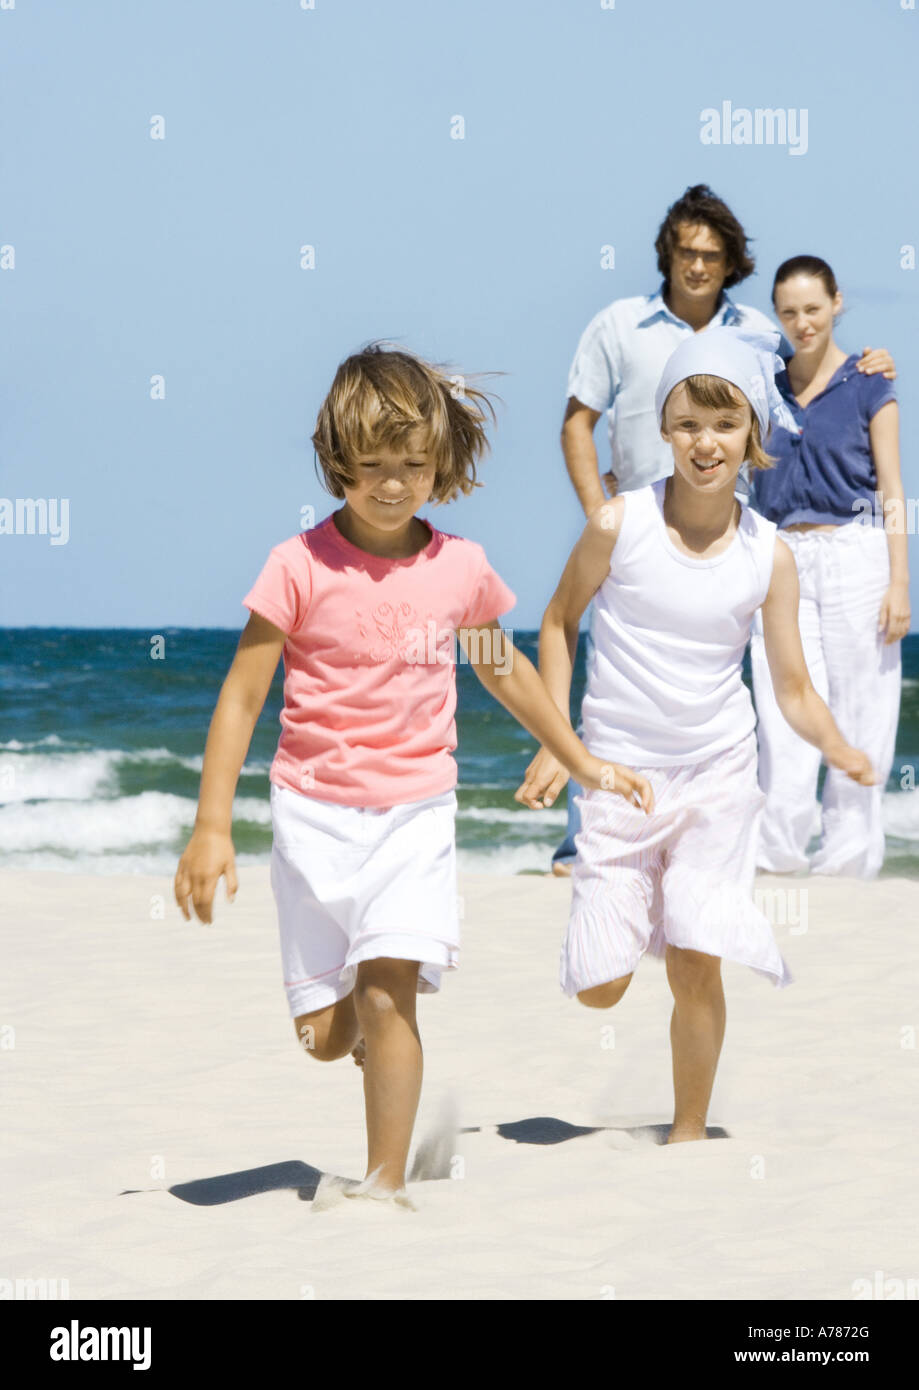 Girls running on beach while parents stand in background - Stock Image